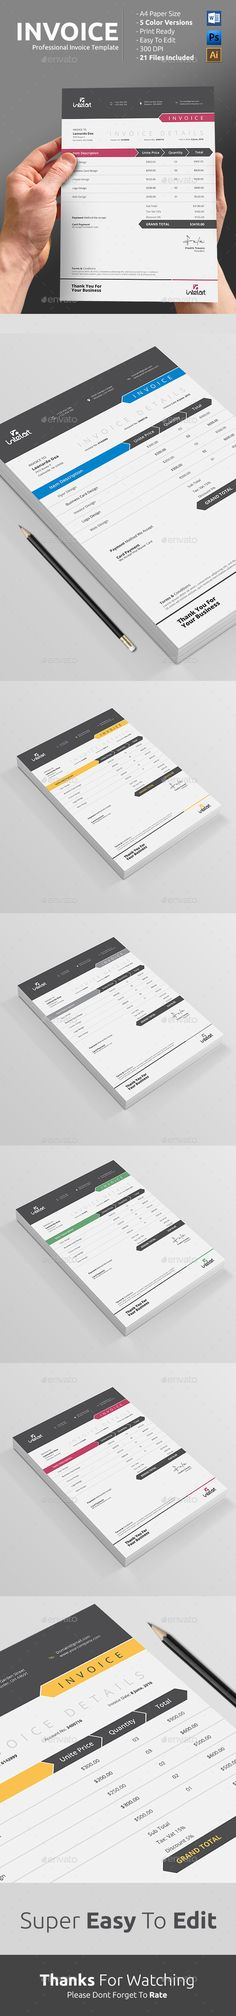 Invoice Template PSD, AI #design Download: http://graphicriver.net/item/invoice/13280533?ref=ksioks